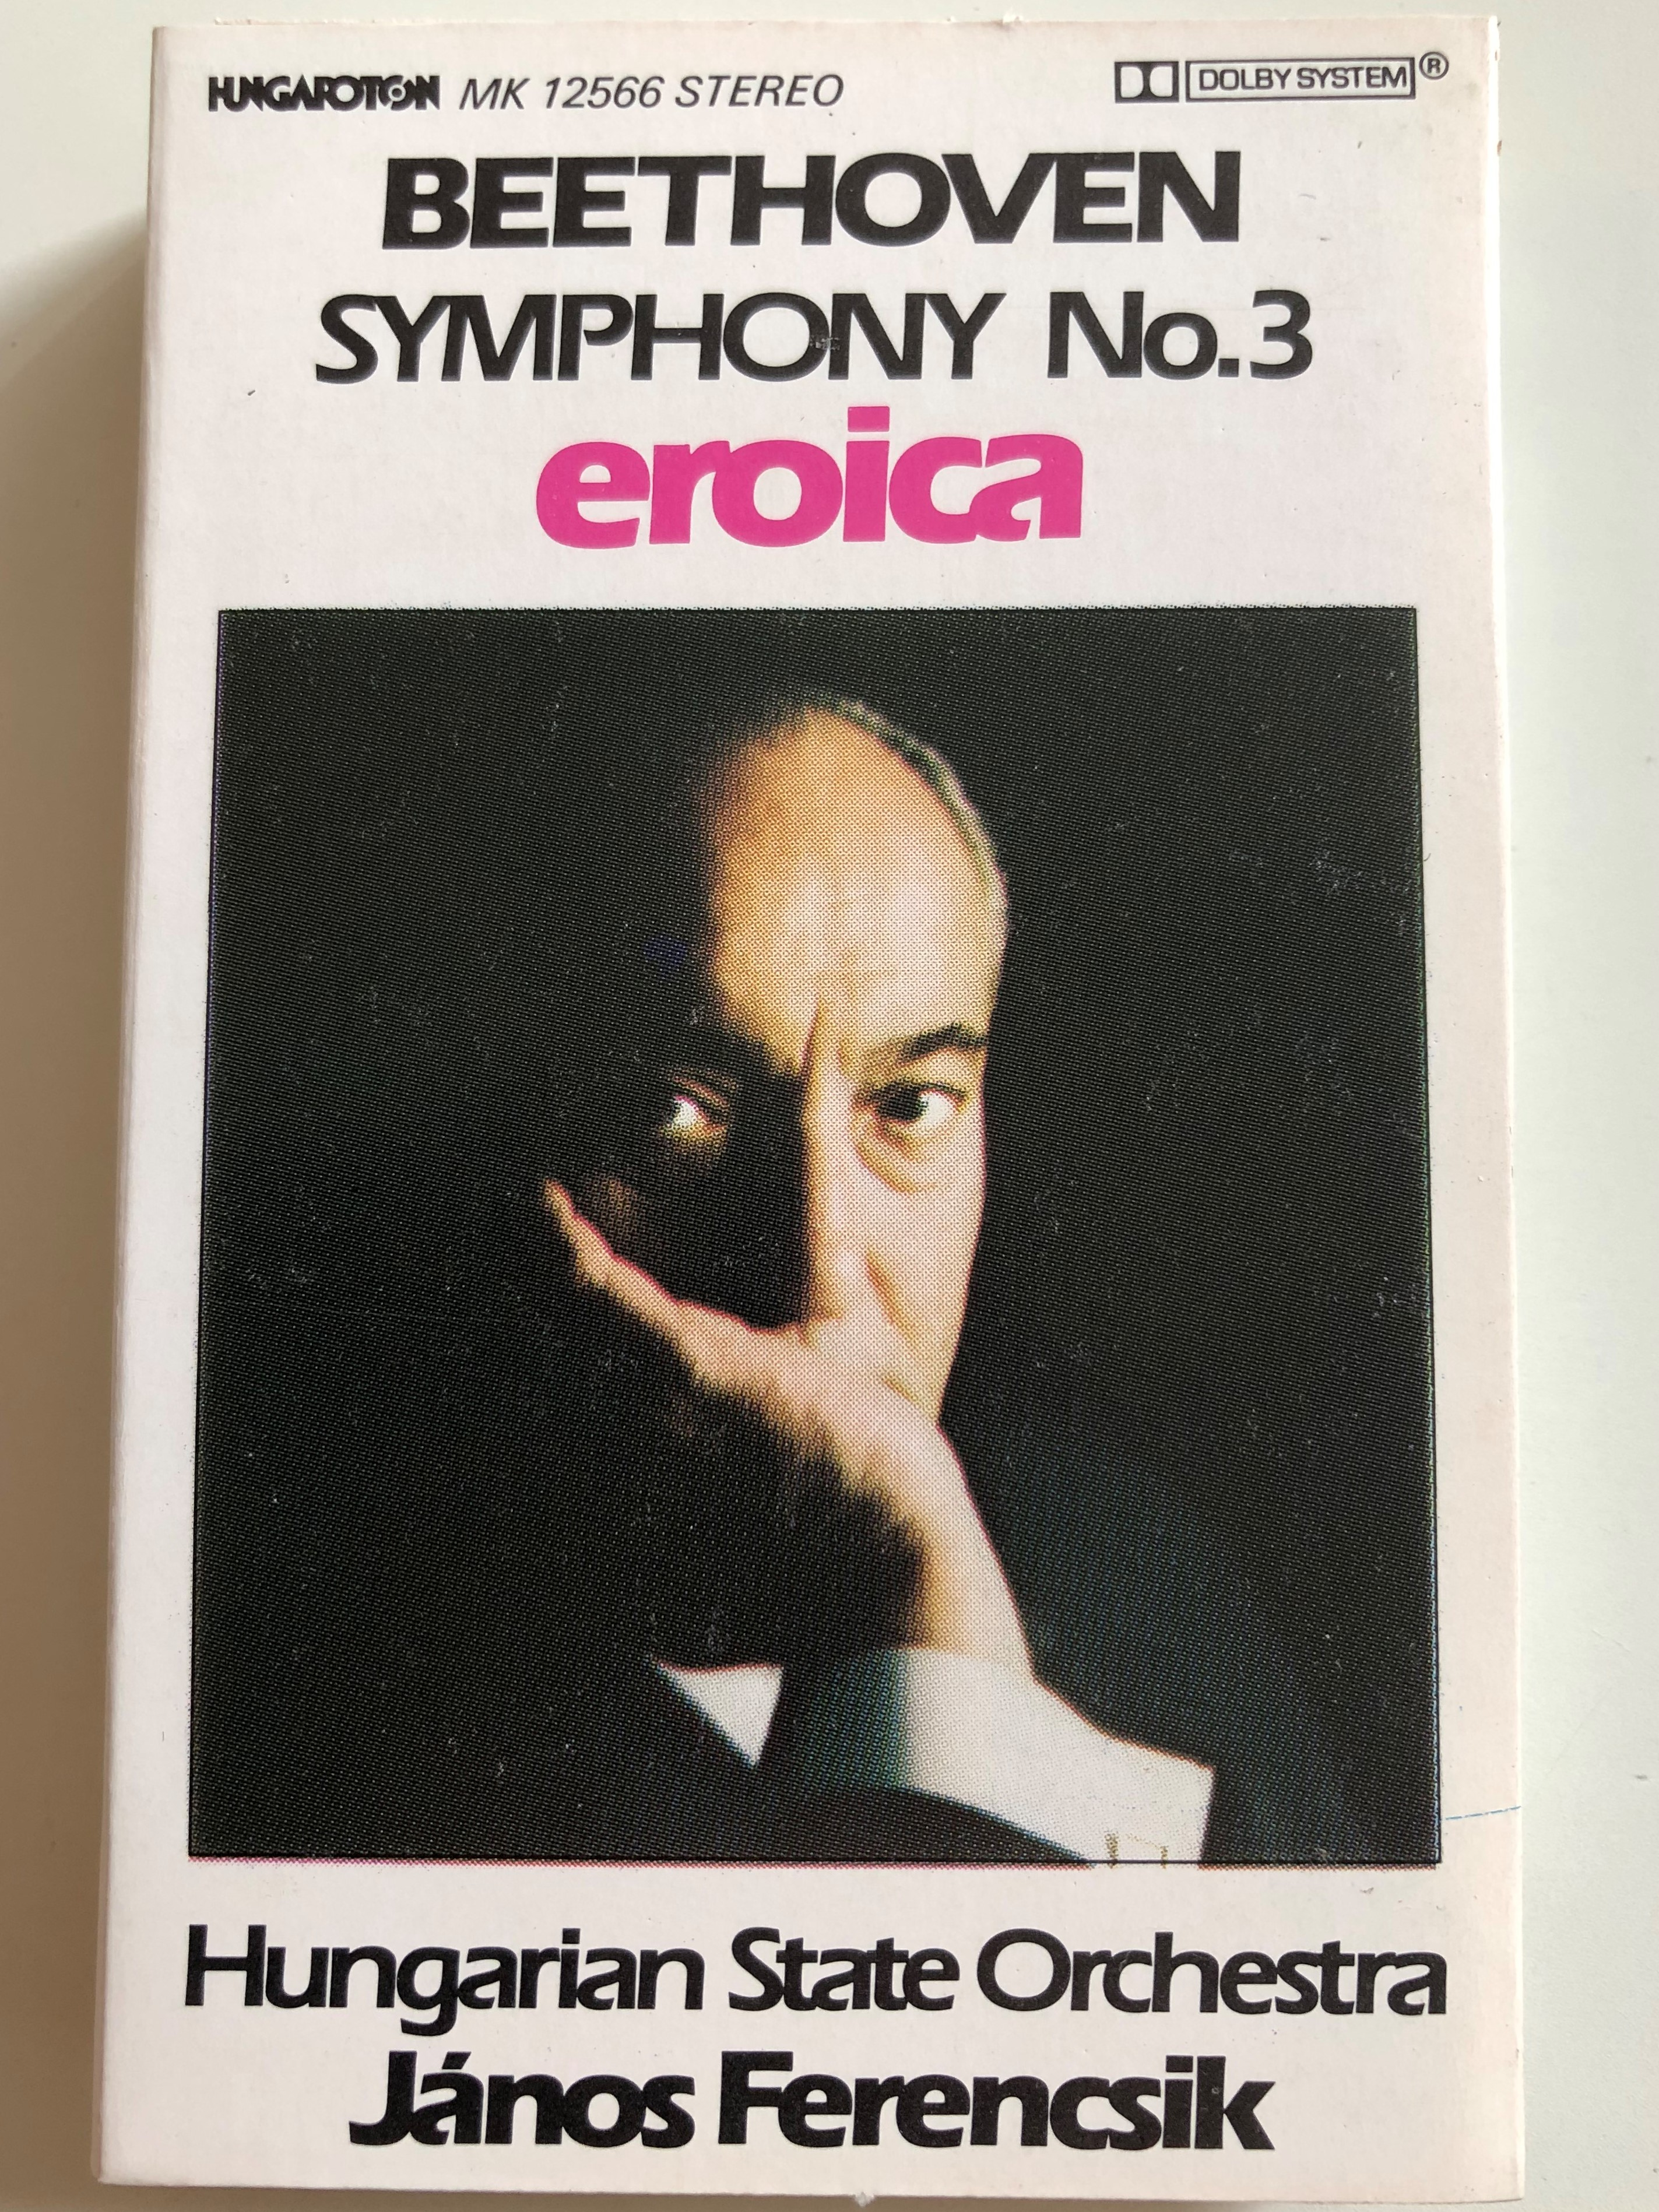 beethoven-symphony-no.-3-eroica-hungarian-state-orchestra-j-nos-ferencsik-hungaroton-cassette-stereo-mk-12566-1-.jpg